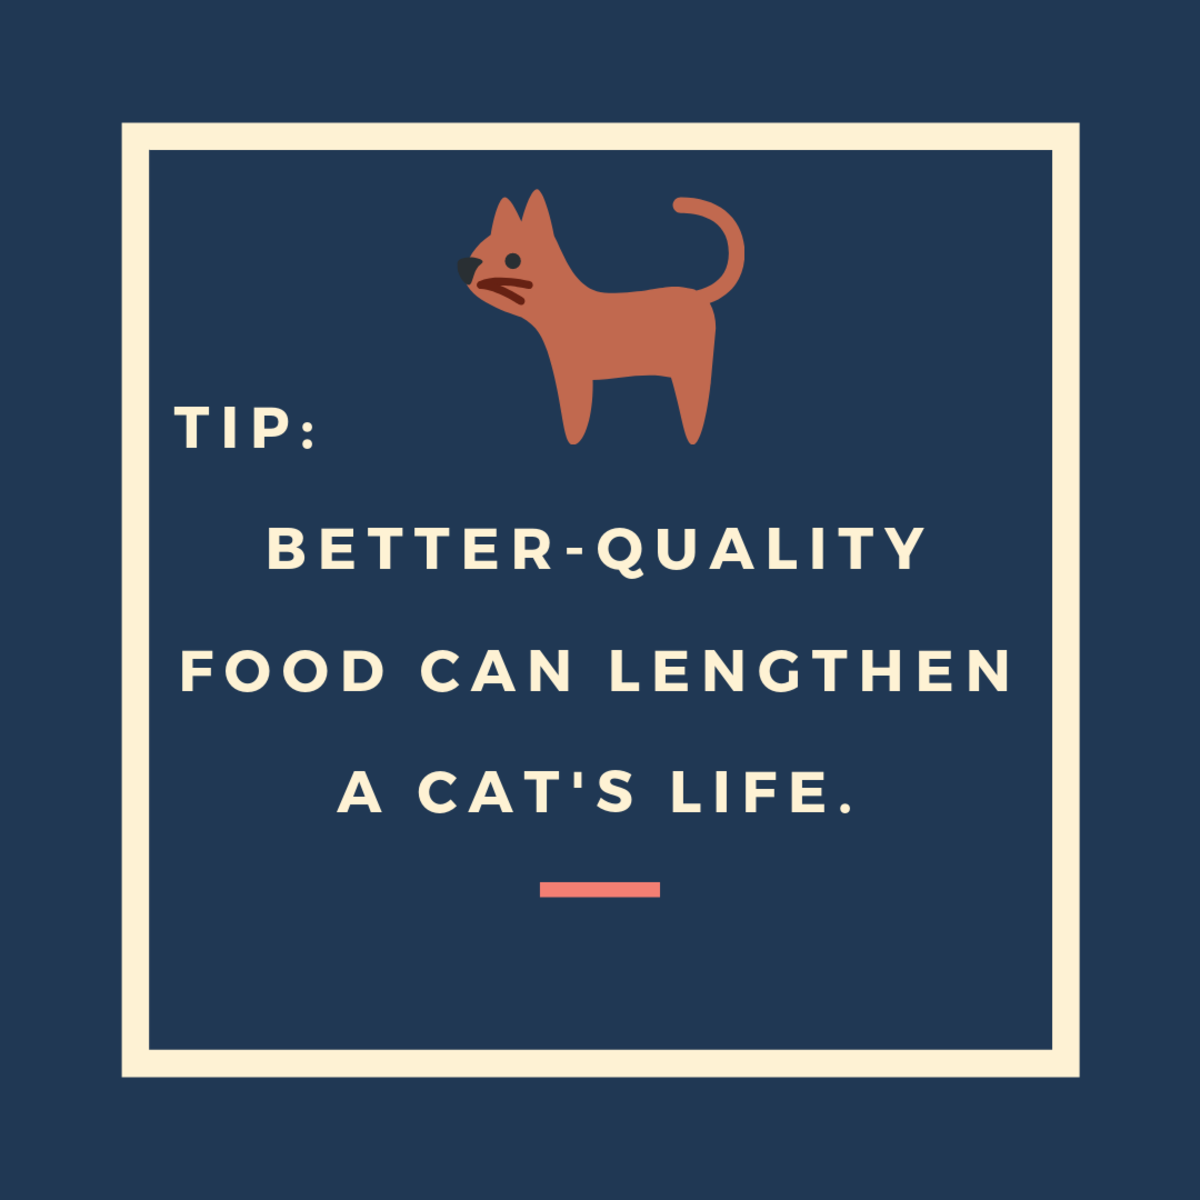 Feed High-Quality Cat Food